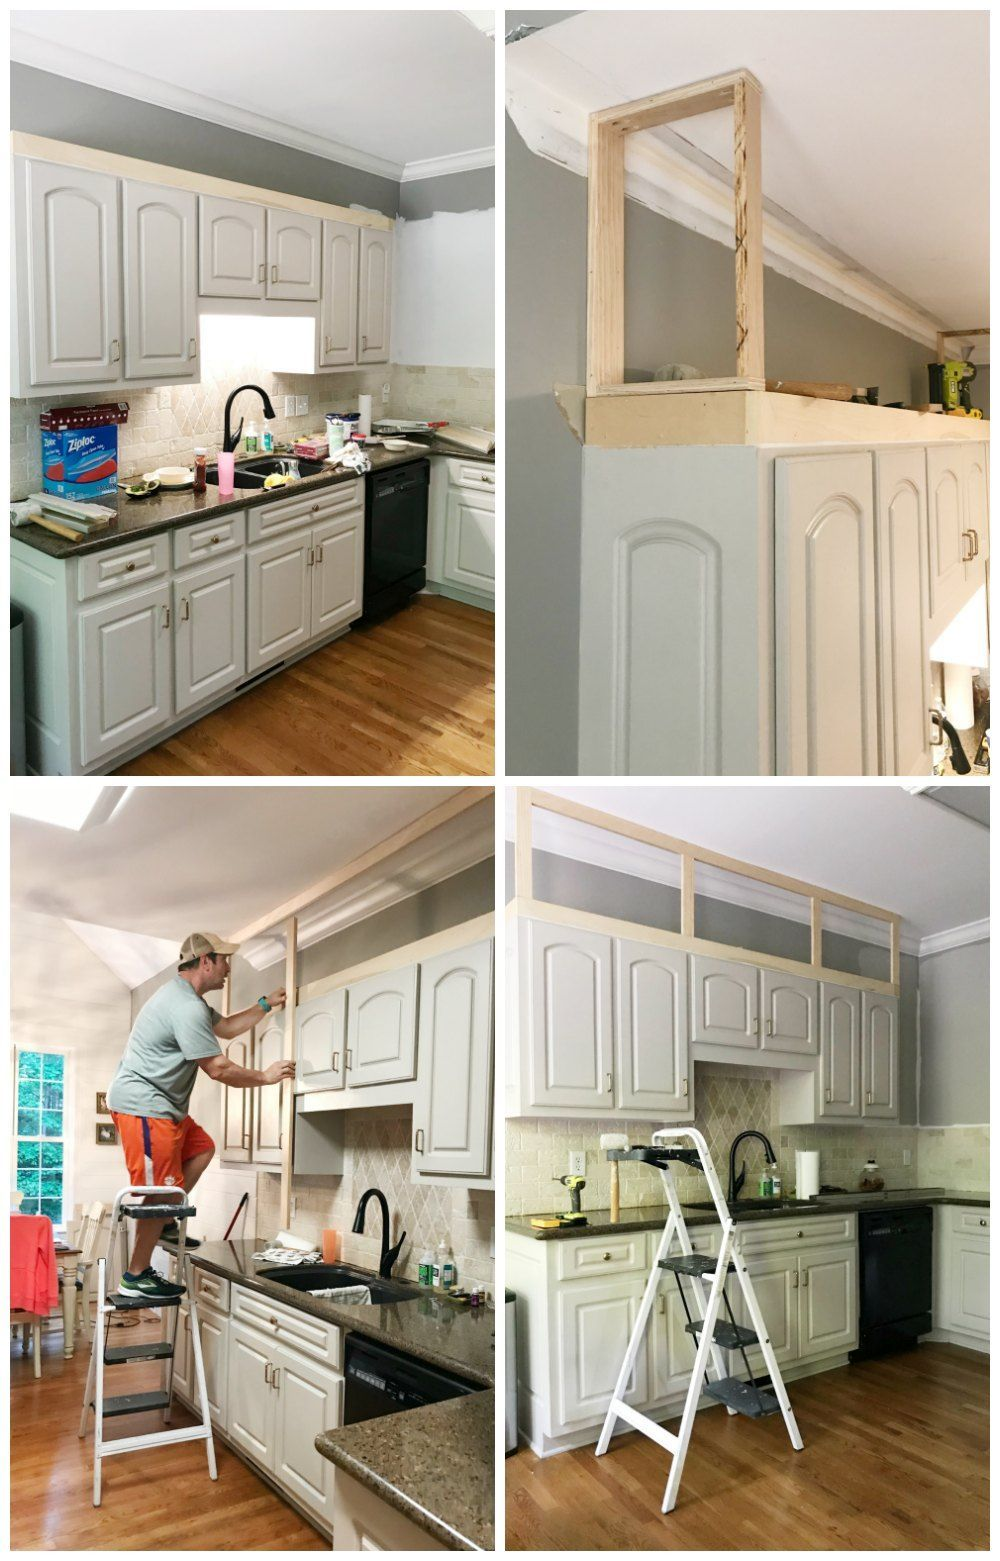 Kitchen Cabinet Facelift At Home With The Barkers Barkers Cabinet Diy Home Impro In 2020 Top Kitchen Cabinets Decor Kitchen Cabinet Remodel Above Kitchen Cabinets